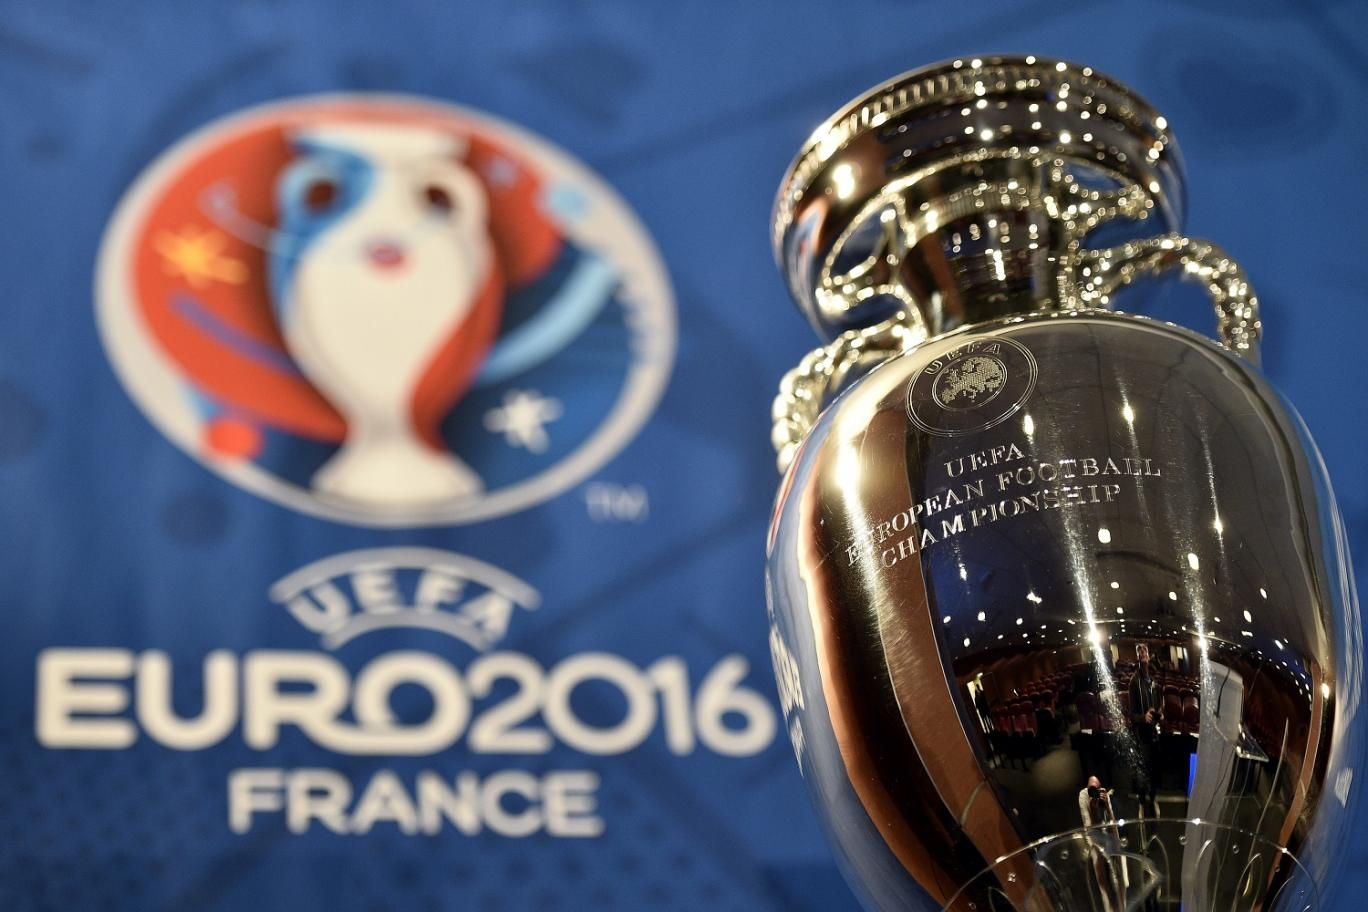 UEFA Euro Cup 2016 or UEFA European Championship 2016 is schedule to     UEFA Euro Cup 2016 or UEFA European Championship 2016 is schedule to be  held in France from 10 june 10 july 2016 For the First time in Eur